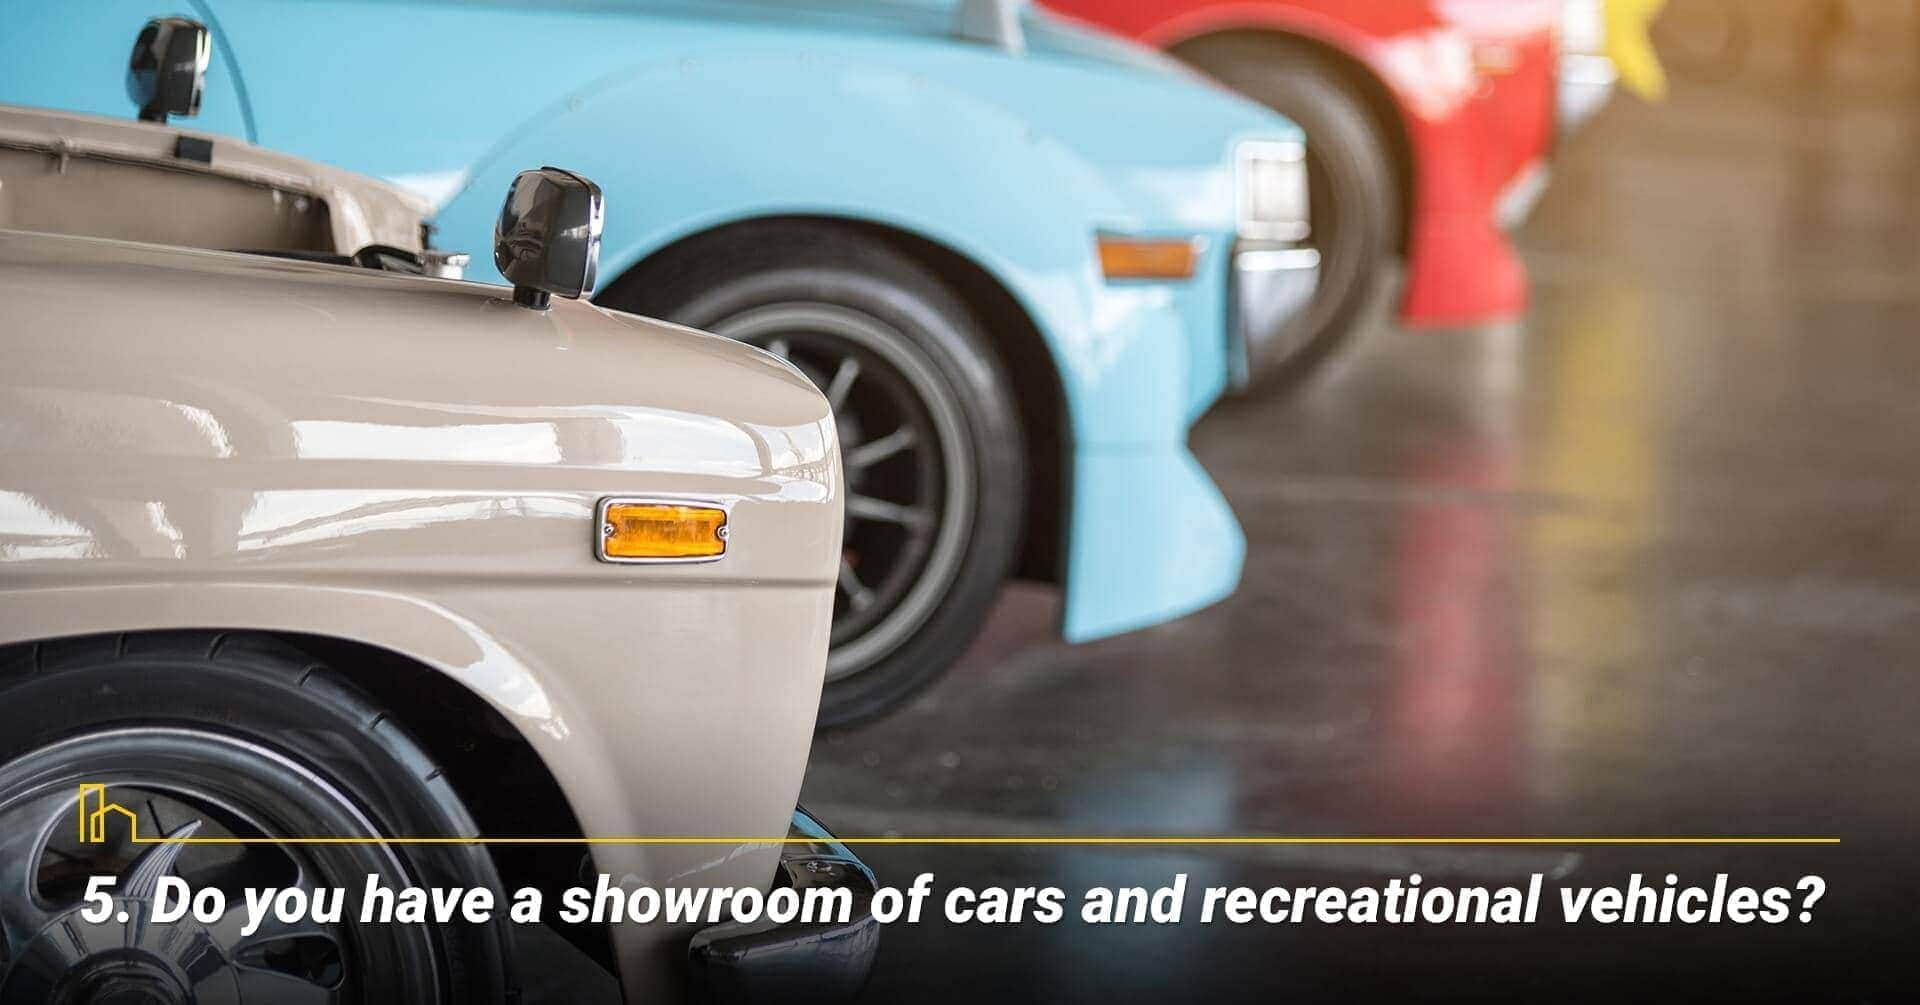 Do you have a showroom of cars and recreational vehicles?